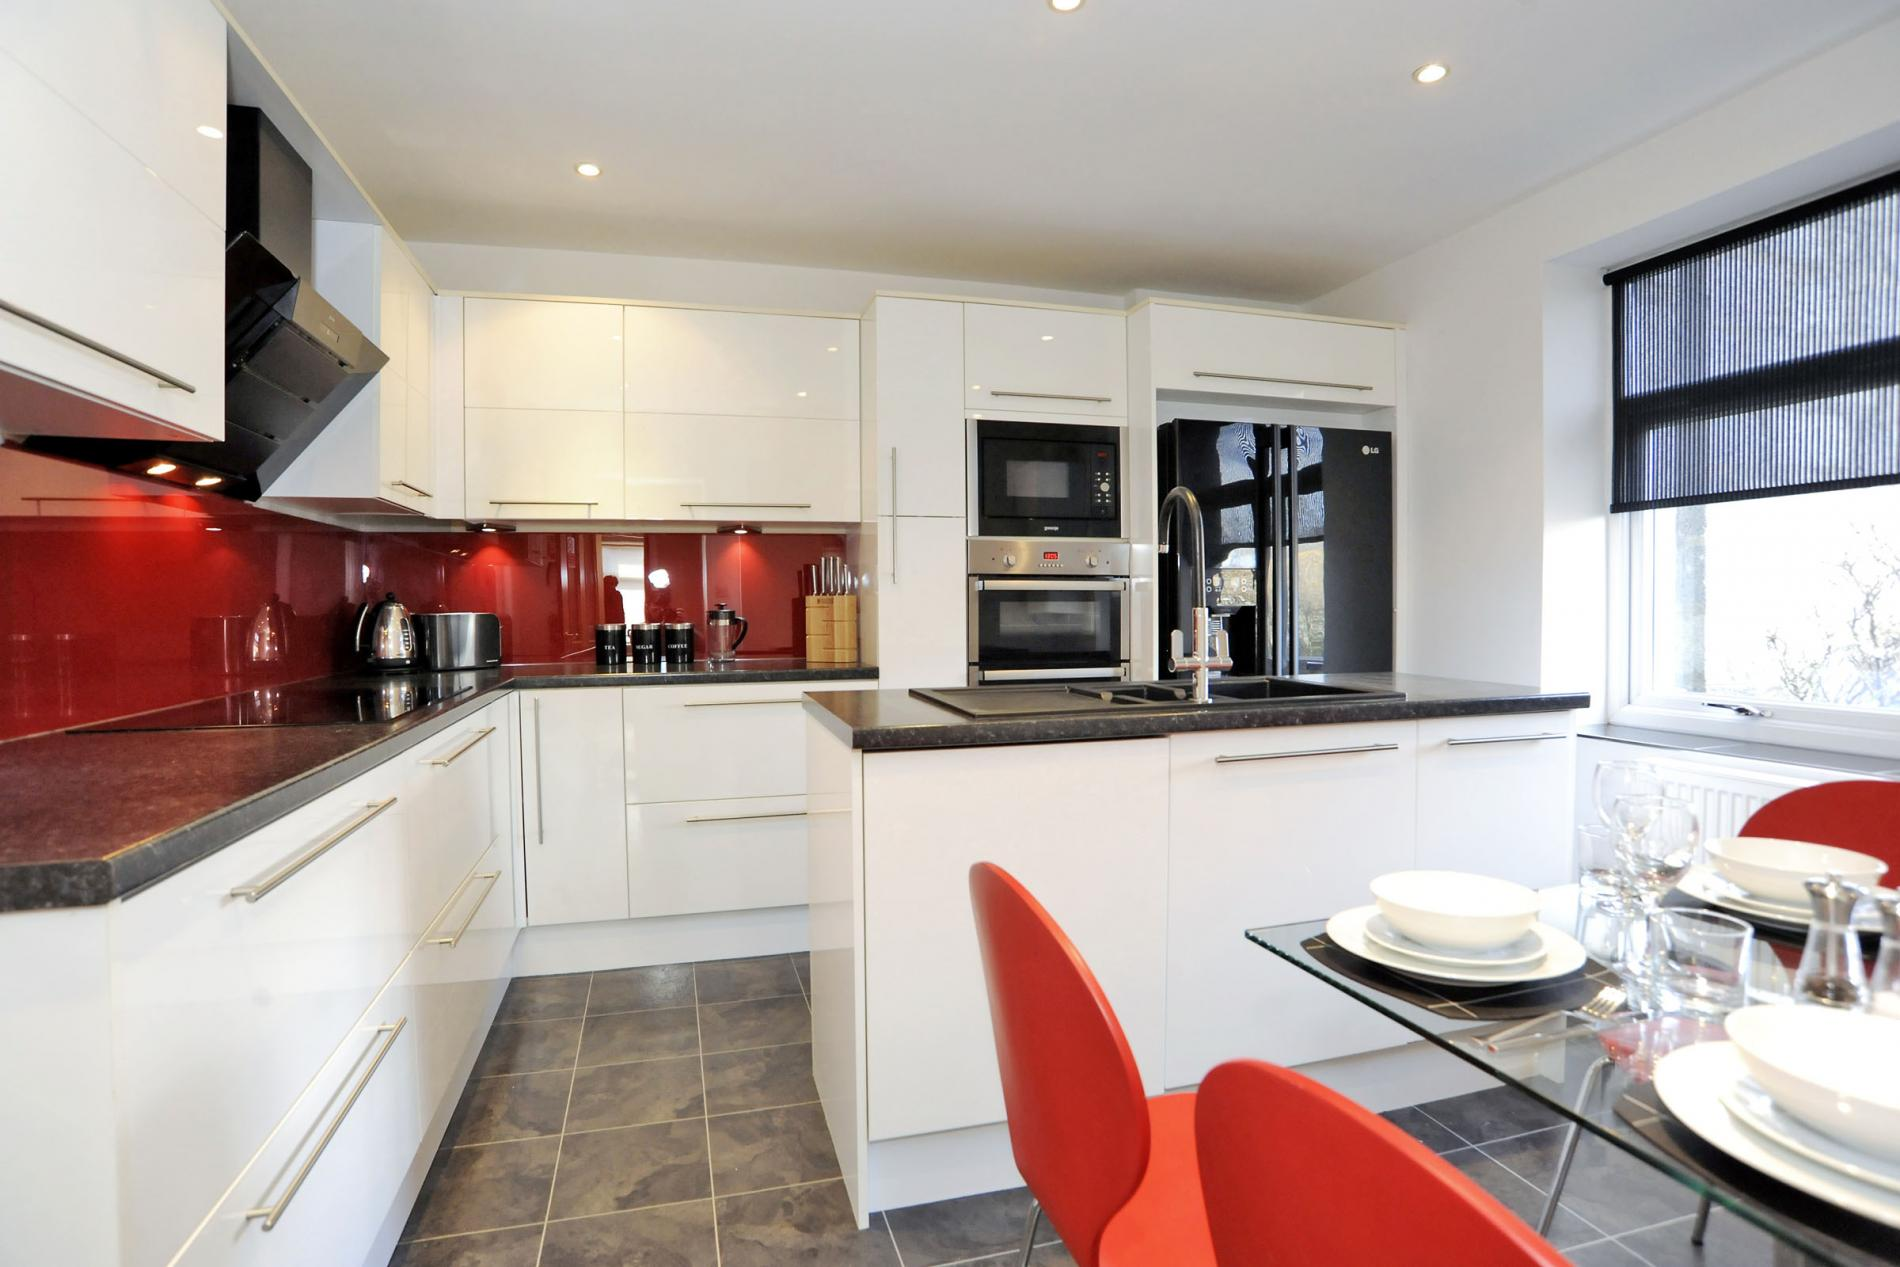 Home From Home Central Self Catering Apartments In Aberdeen